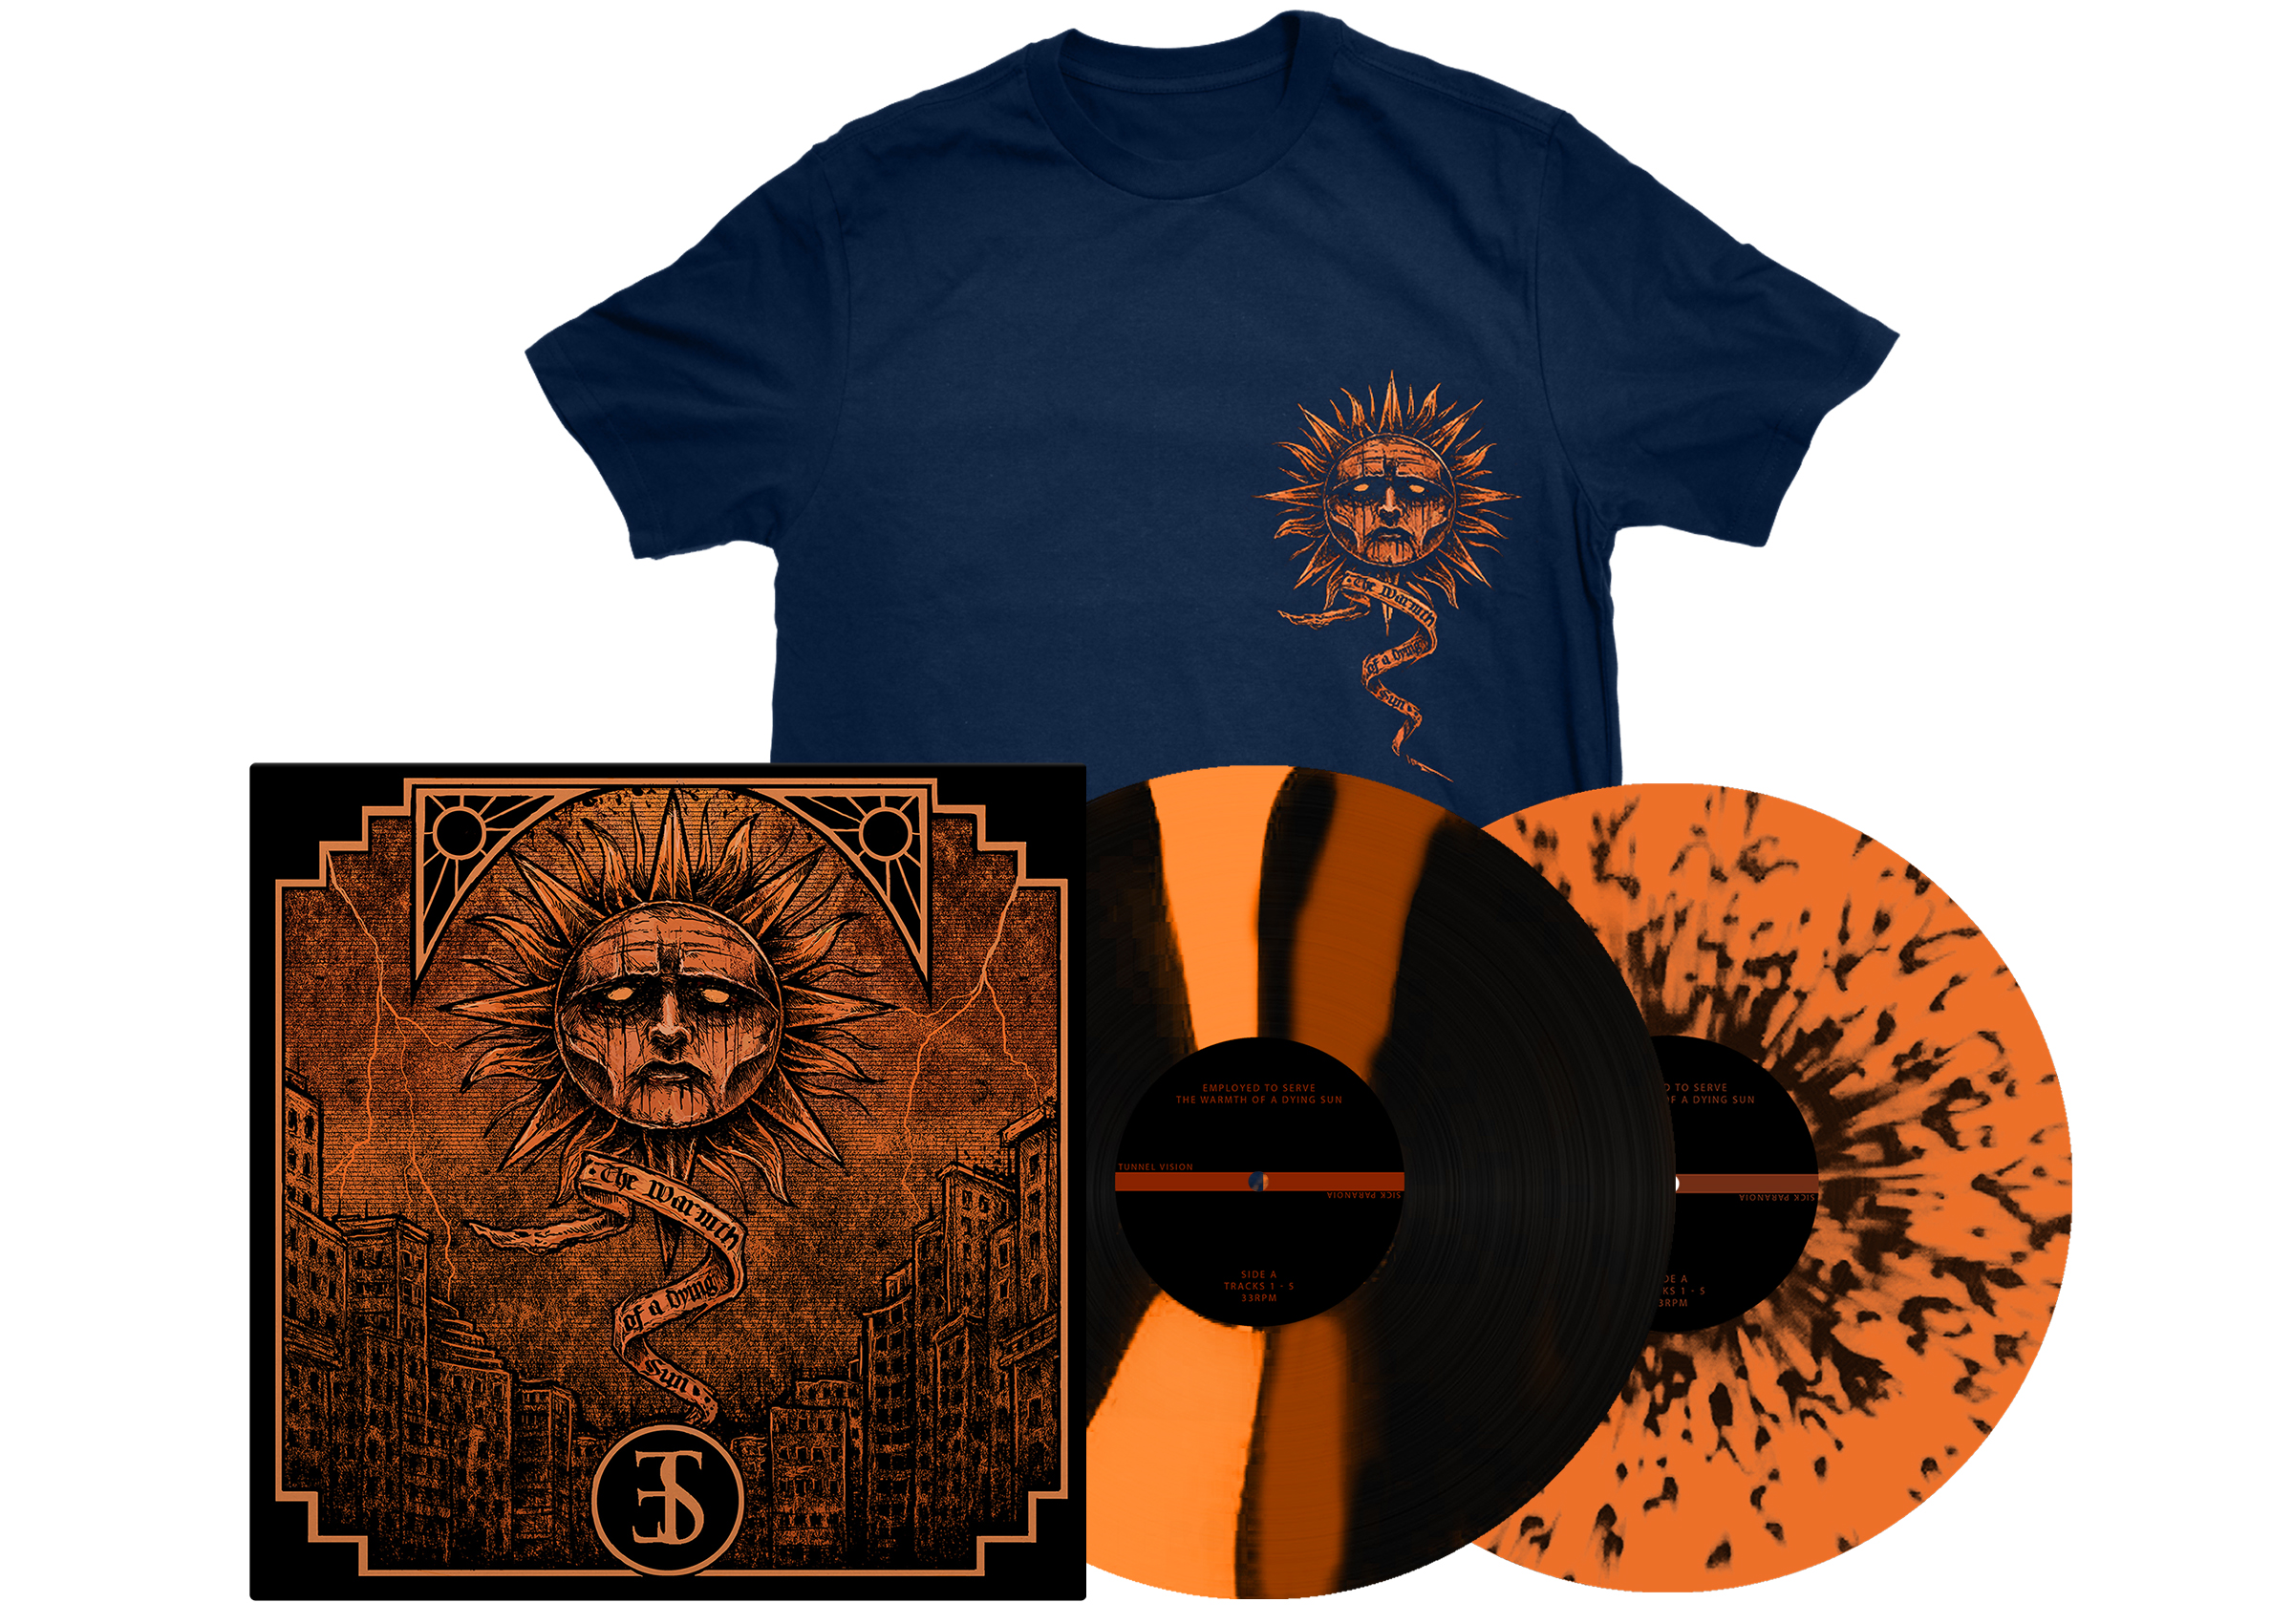 Employed To Serve - The Warmth Of A Dying Sun navy shirt + LP PREORDER